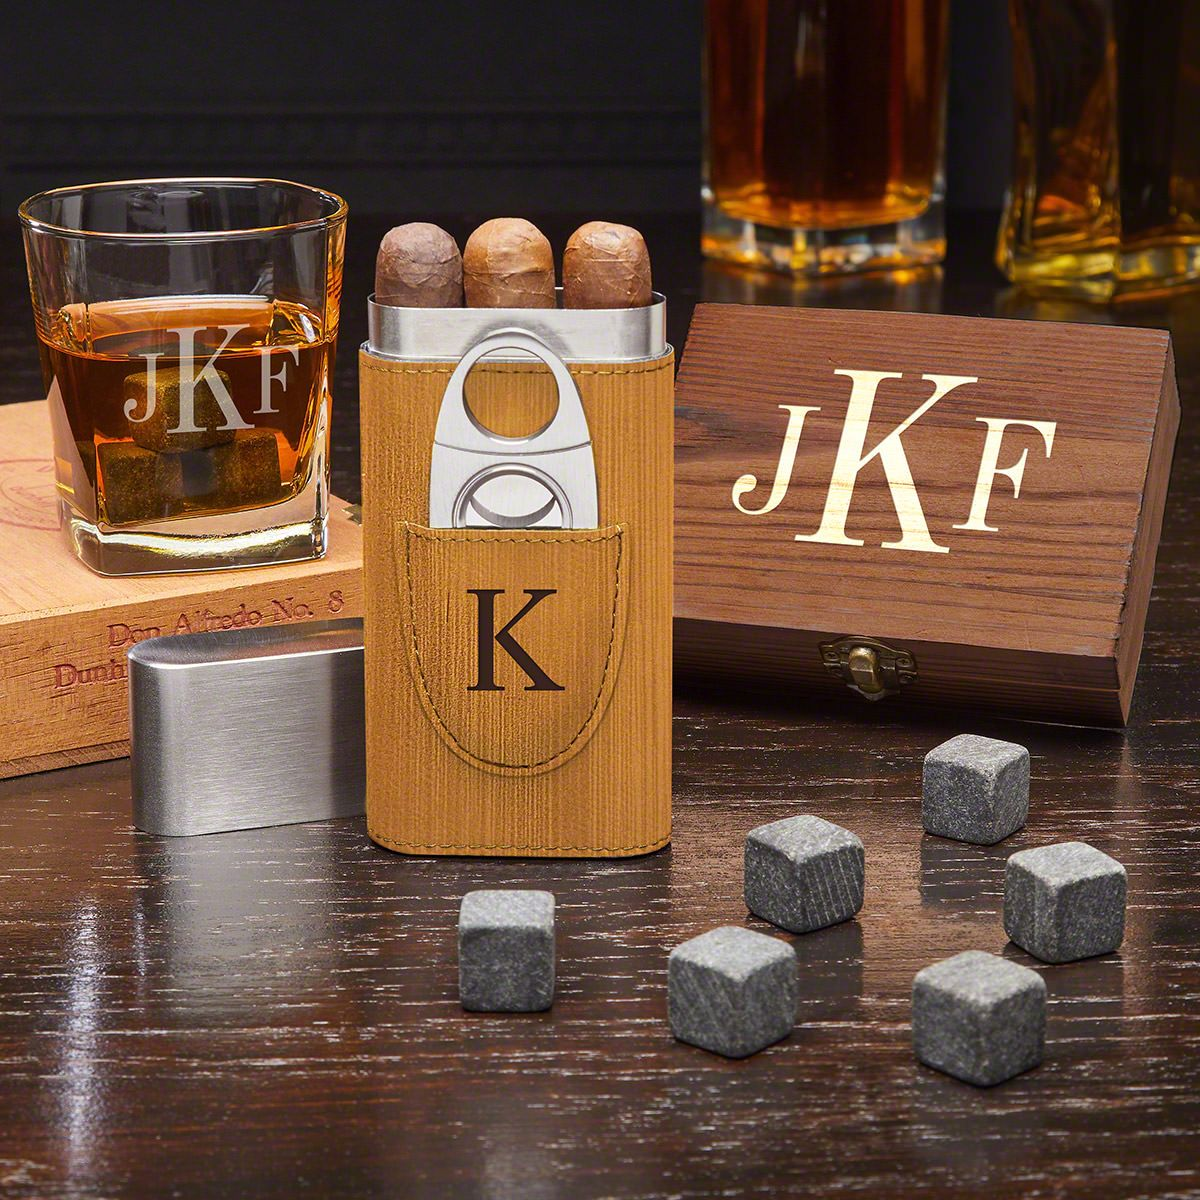 Classic Monogram Engraved Gifts for Cigar Lovers with Whiskey Stones